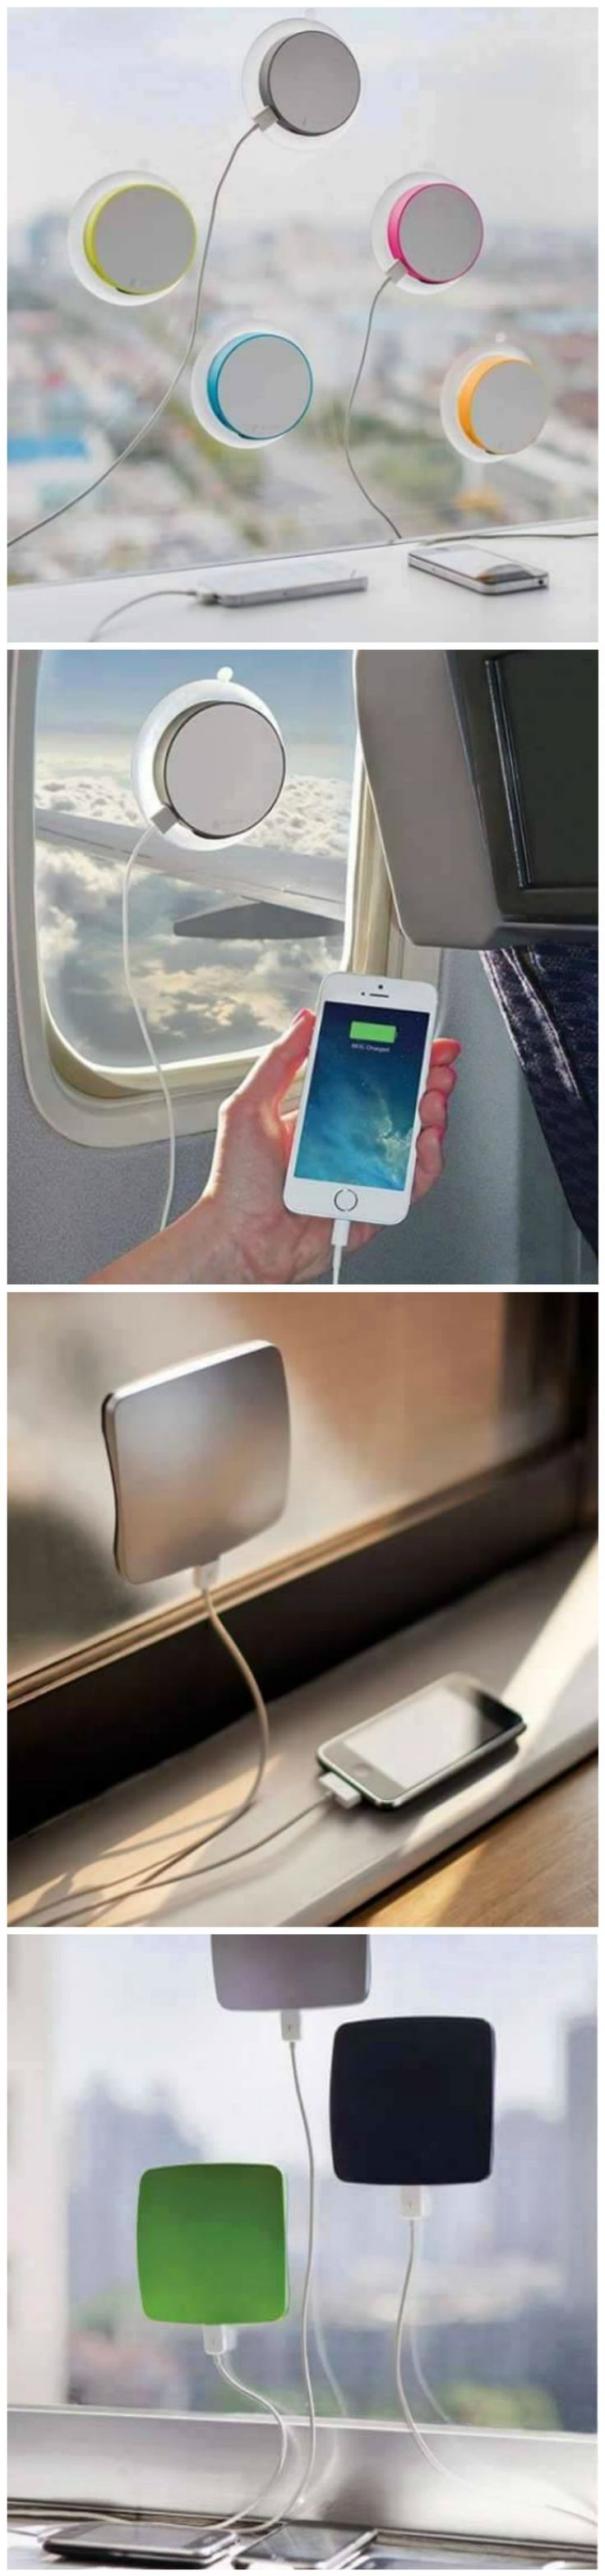 Window Mounted Solar Charger http://amzn.to/2rsuGjX